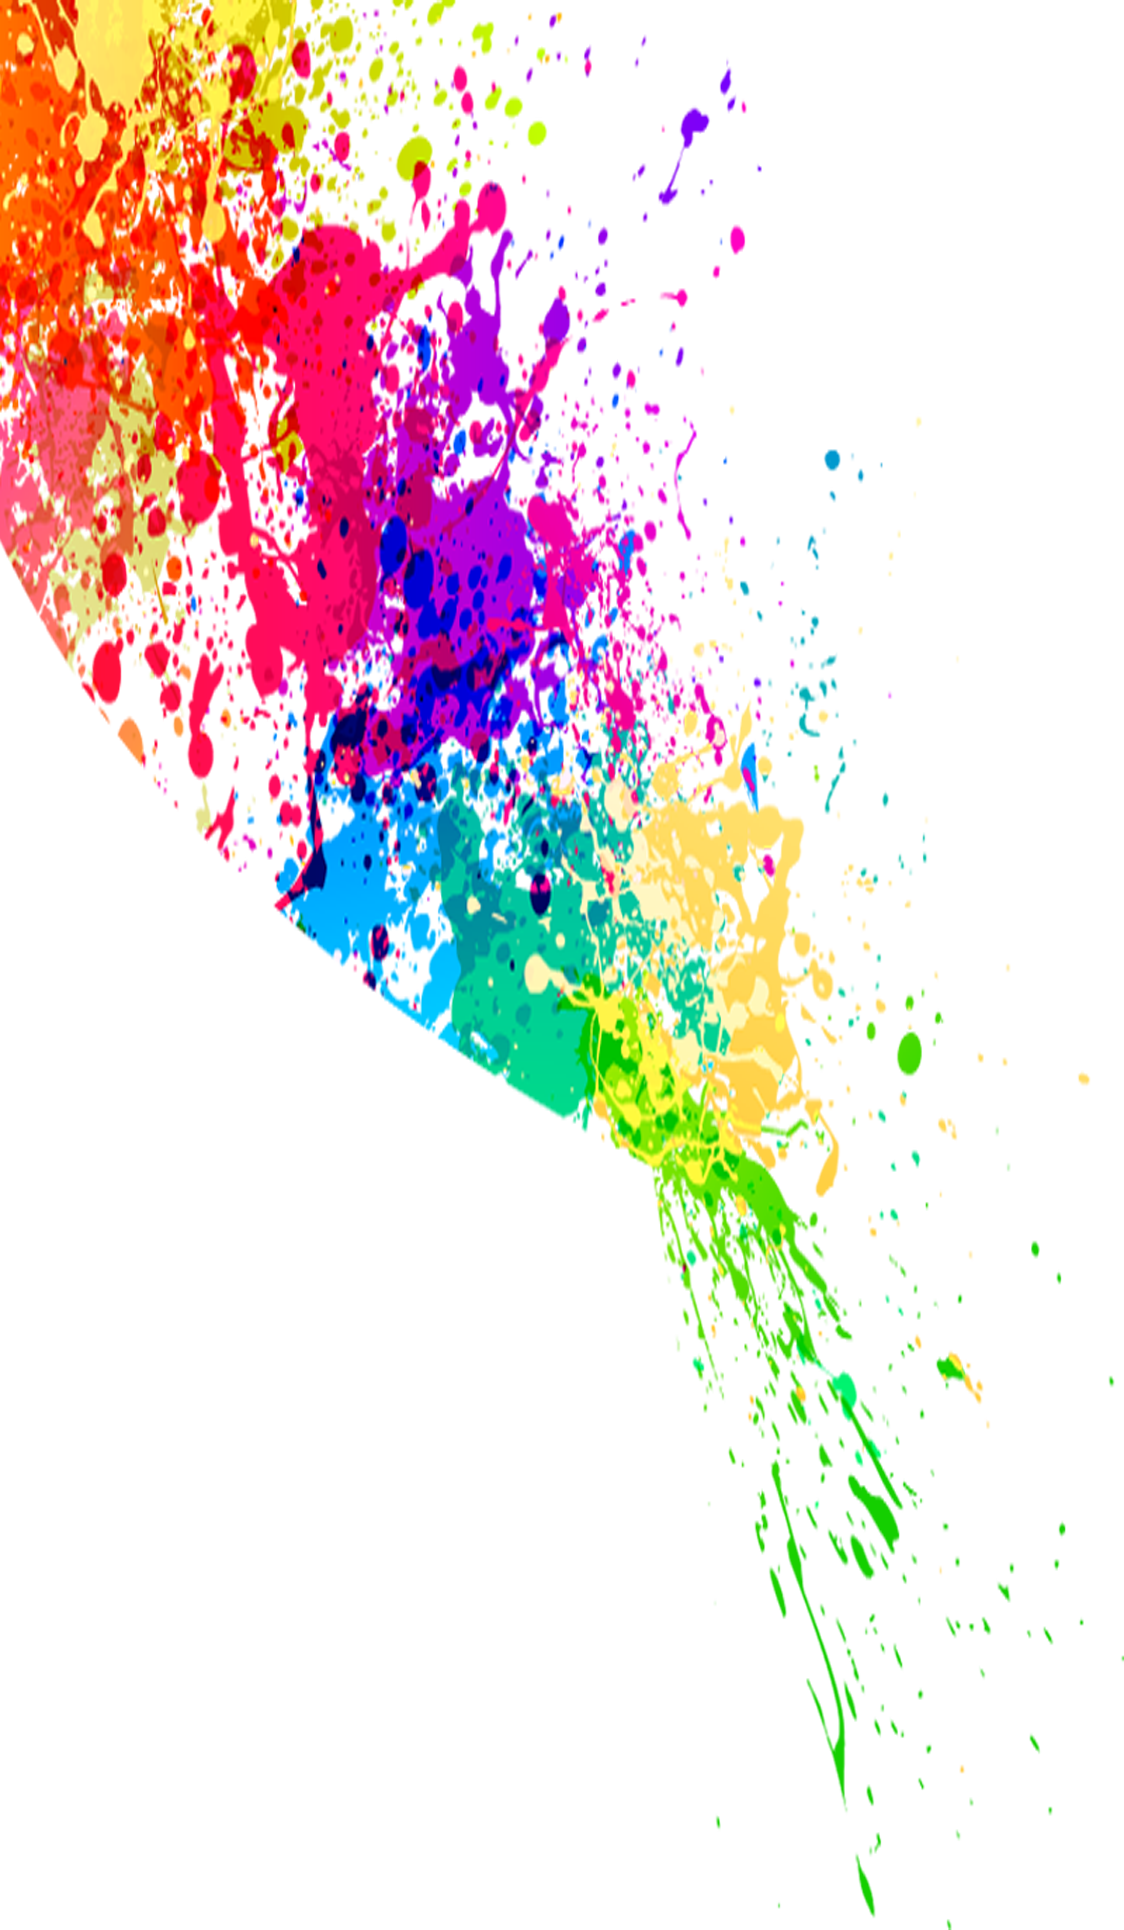 paint splatter transparent png pictures free icons and blood splat vector blood splat vector free